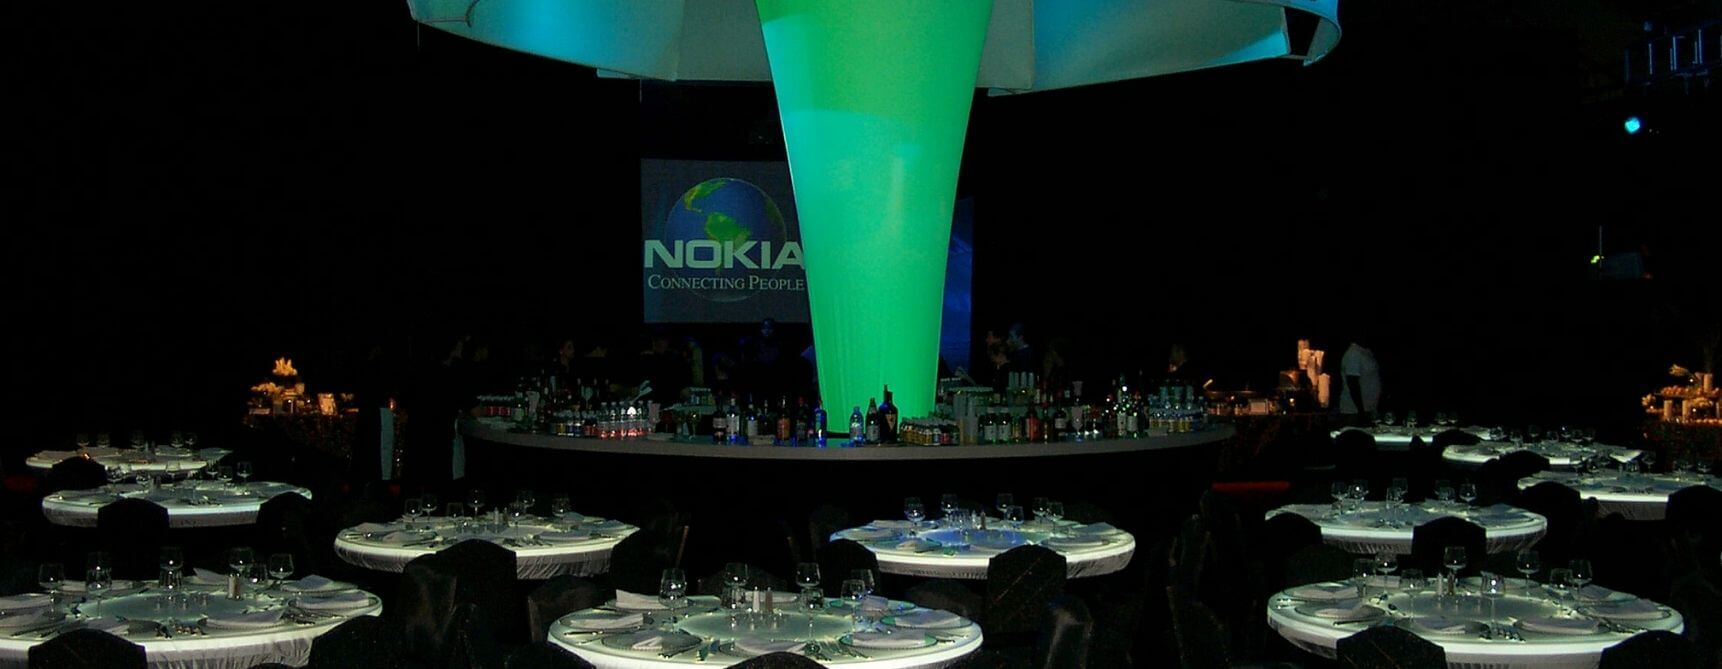 4 Nokia Marketing Event